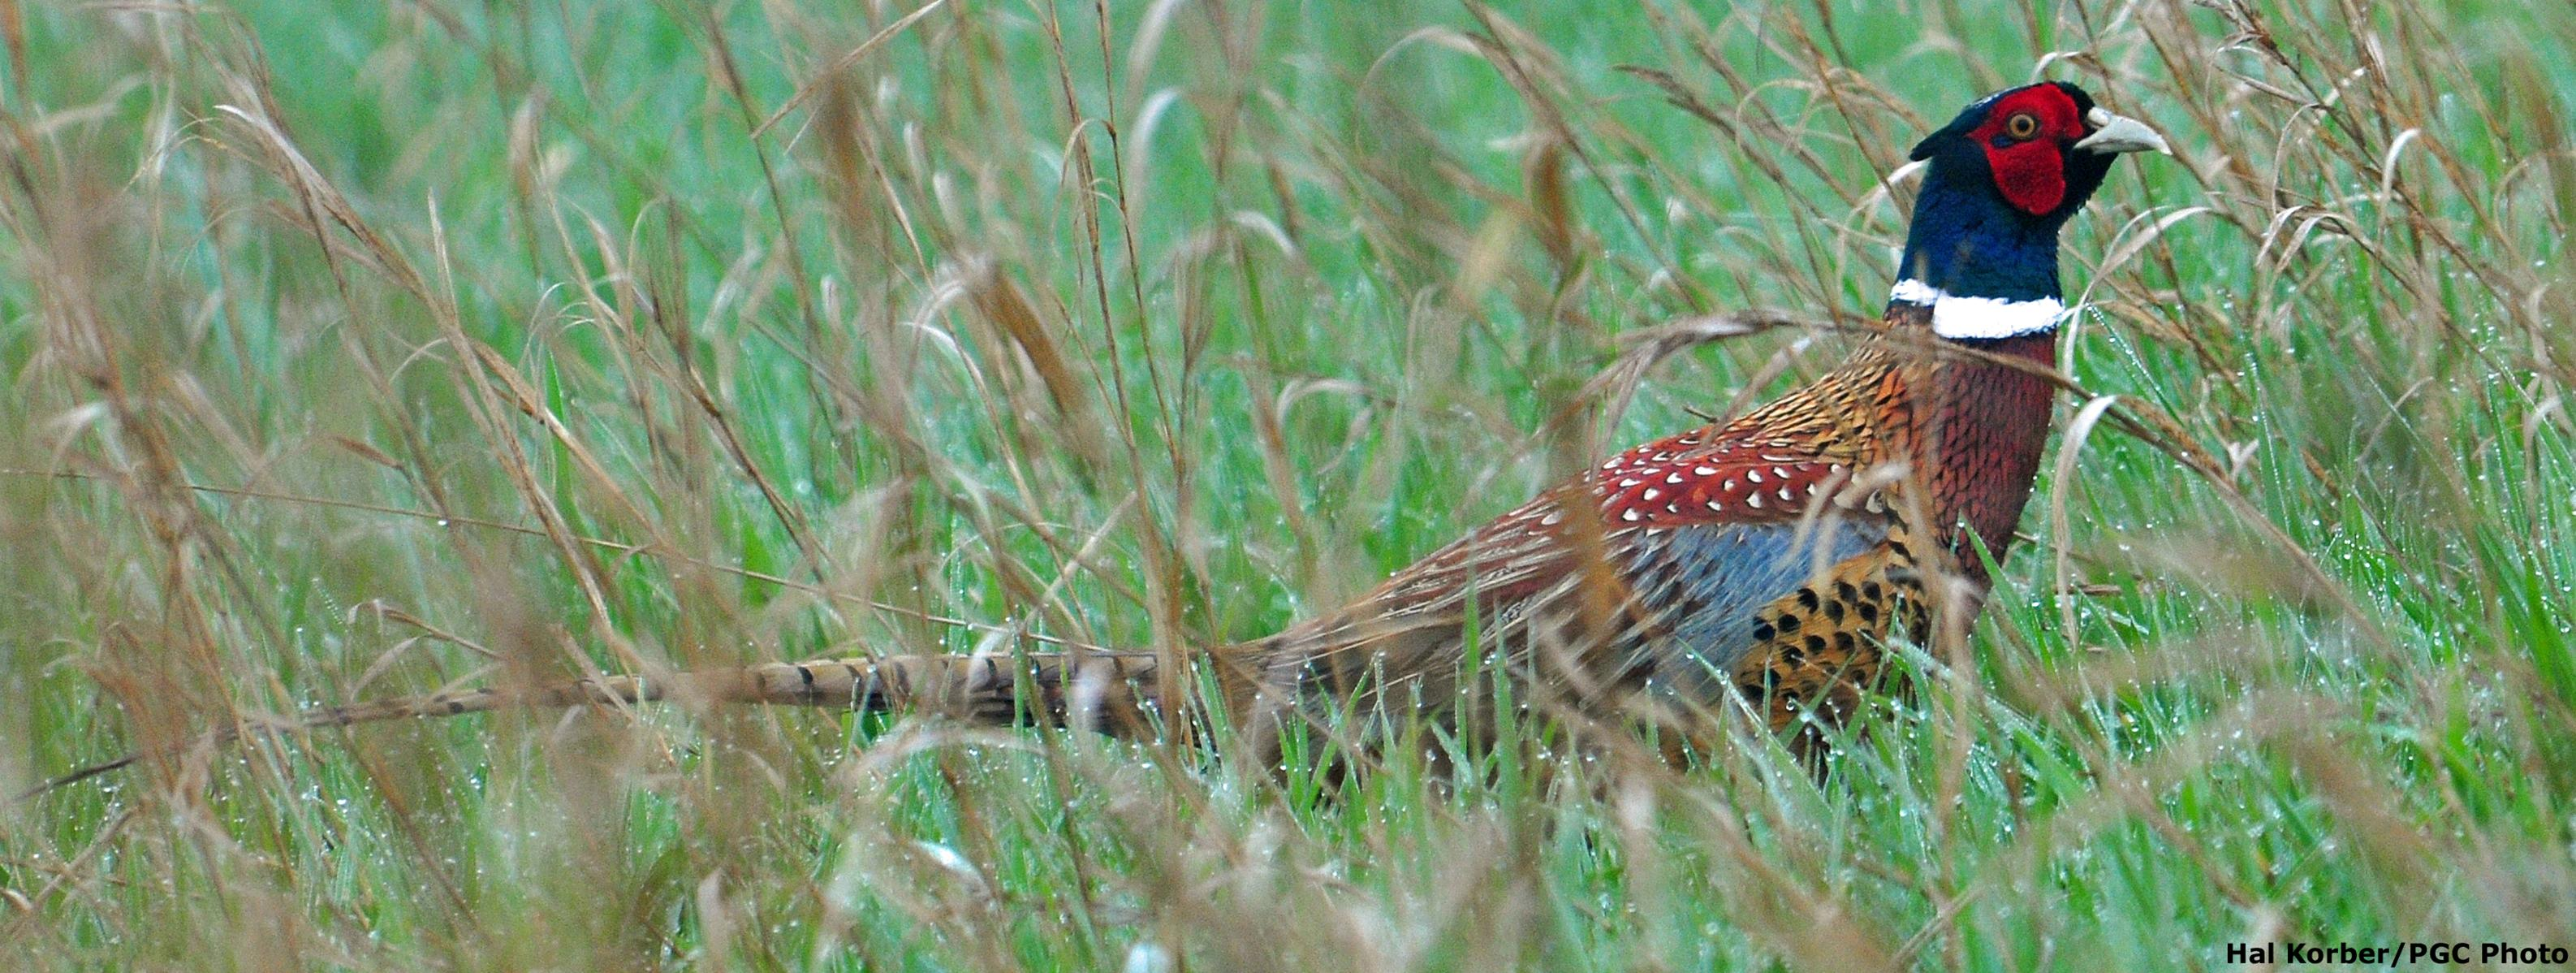 Wild Pheasant Recovery Areas